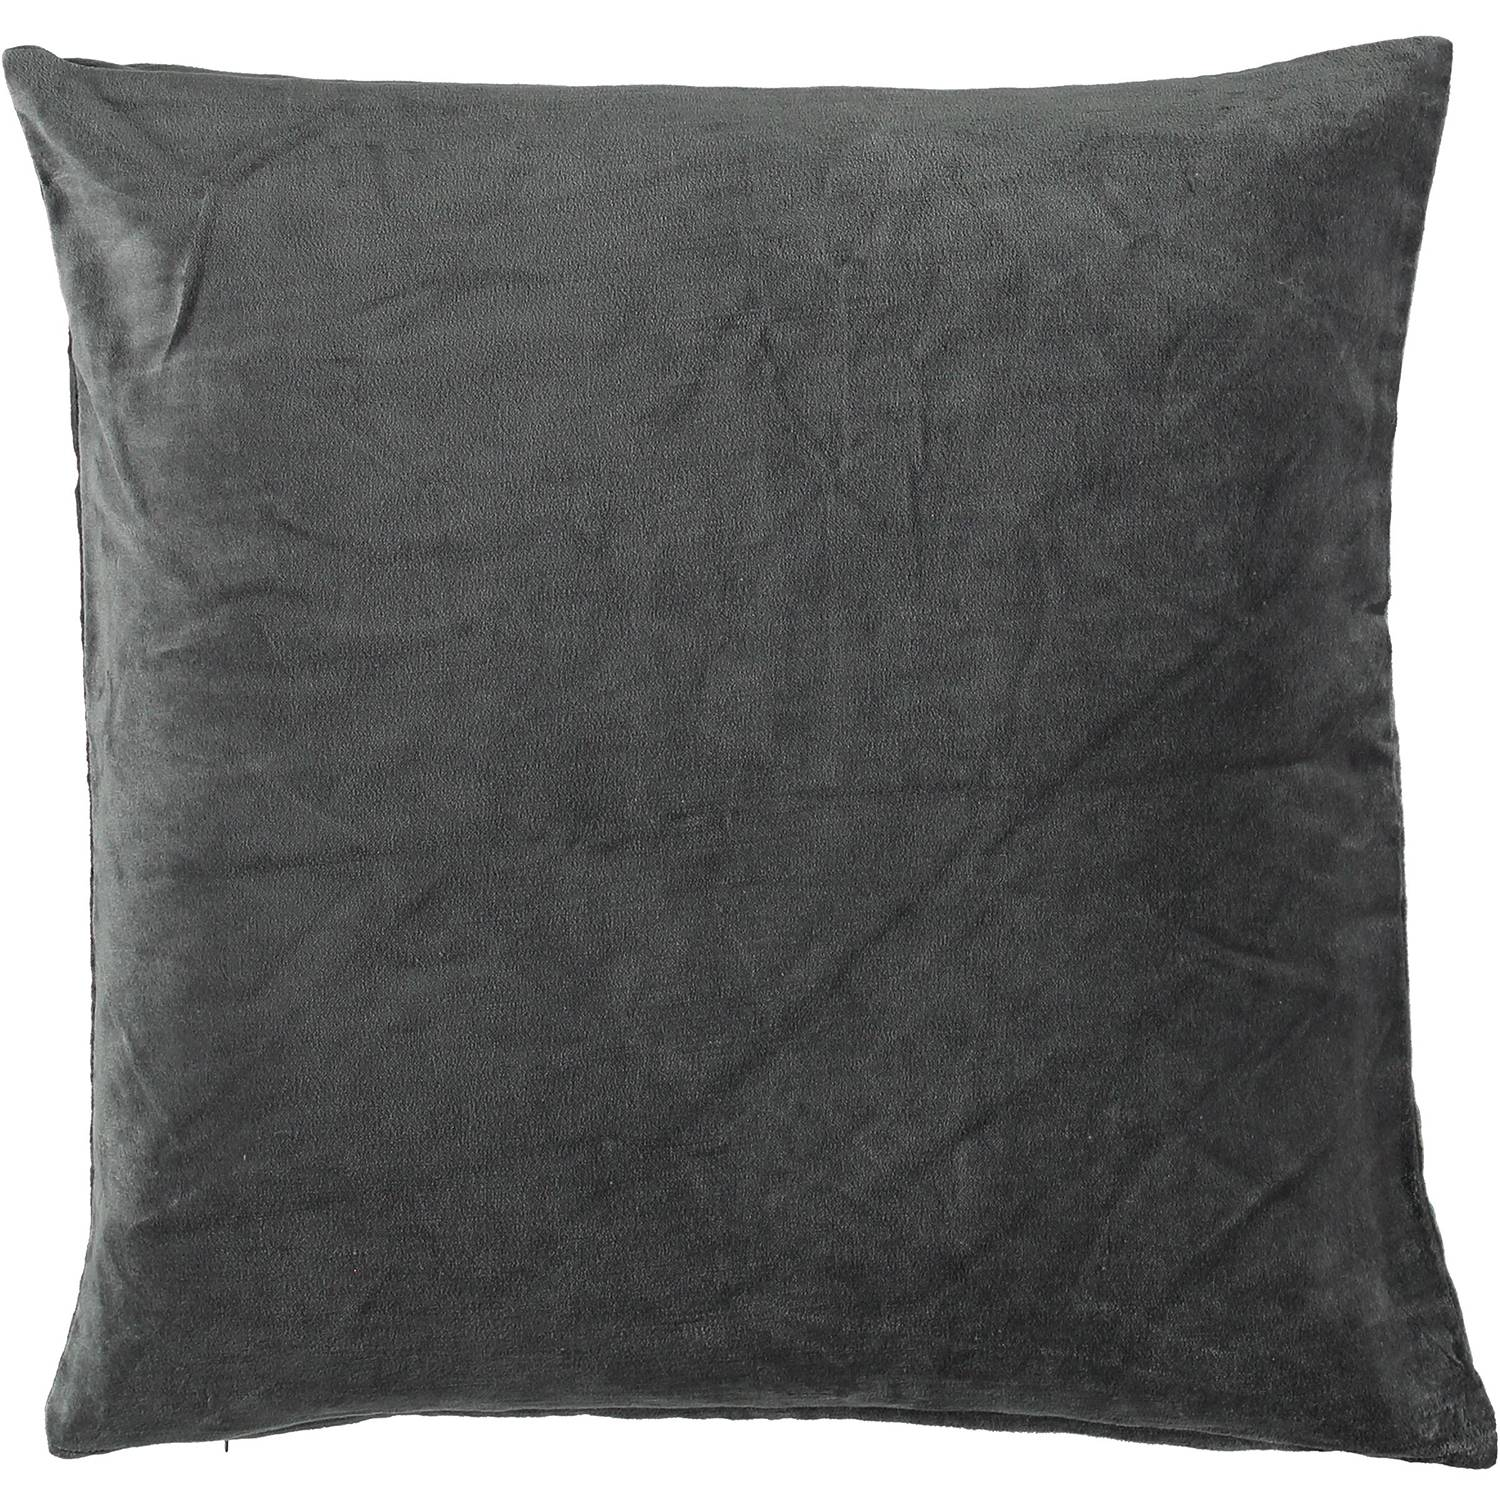 Gripsholm Ava Cushion Cover 50x50 cm, Anthracite